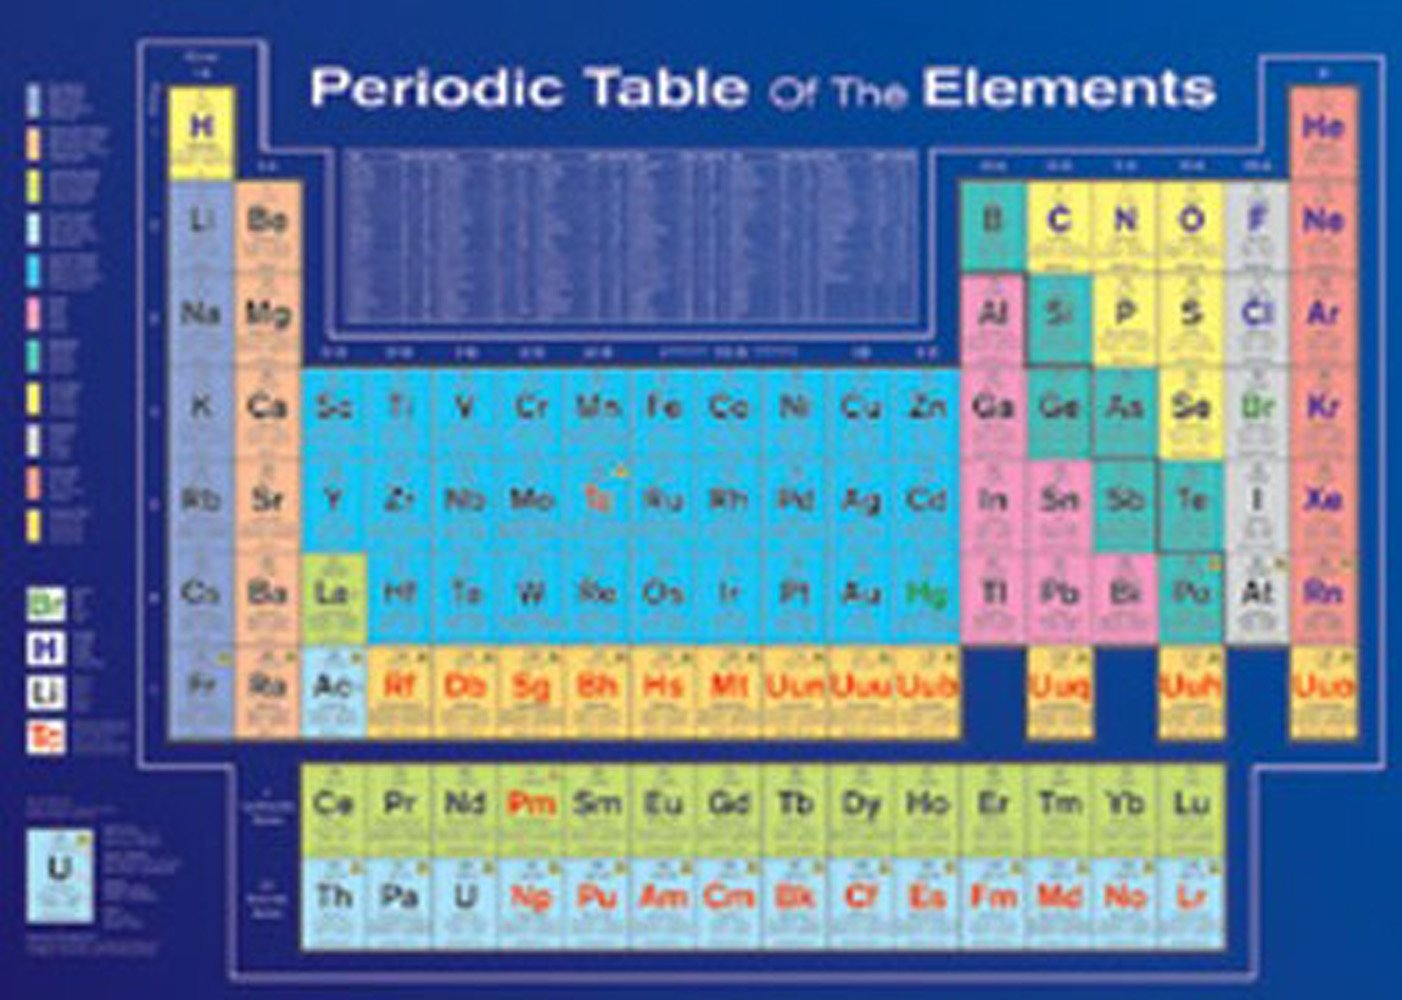 Sl periodic table images periodic table images periodic table of the elements dark blue scientific chart poster periodic table of the elements dark gamestrikefo Images